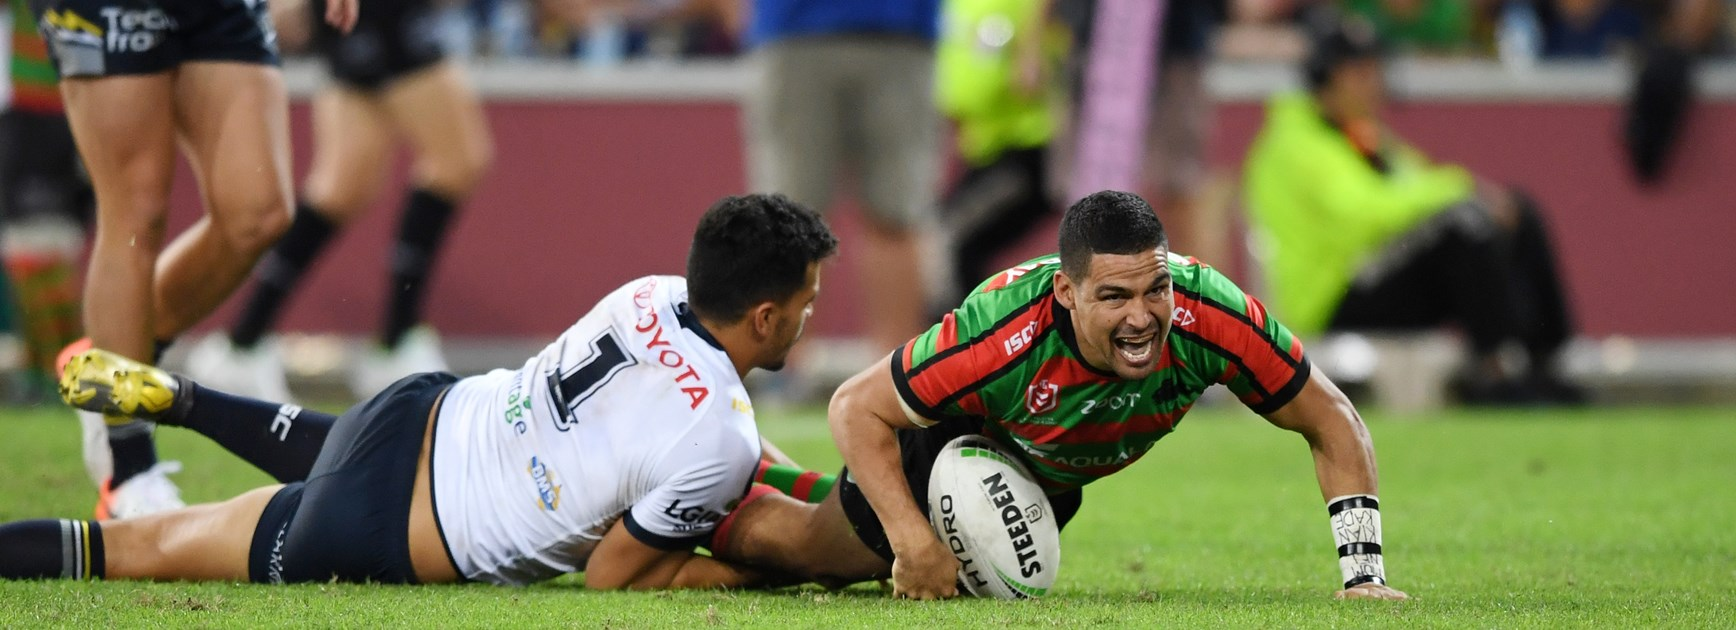 COVID-19 NRL updates: Theme rounds back for revamped season